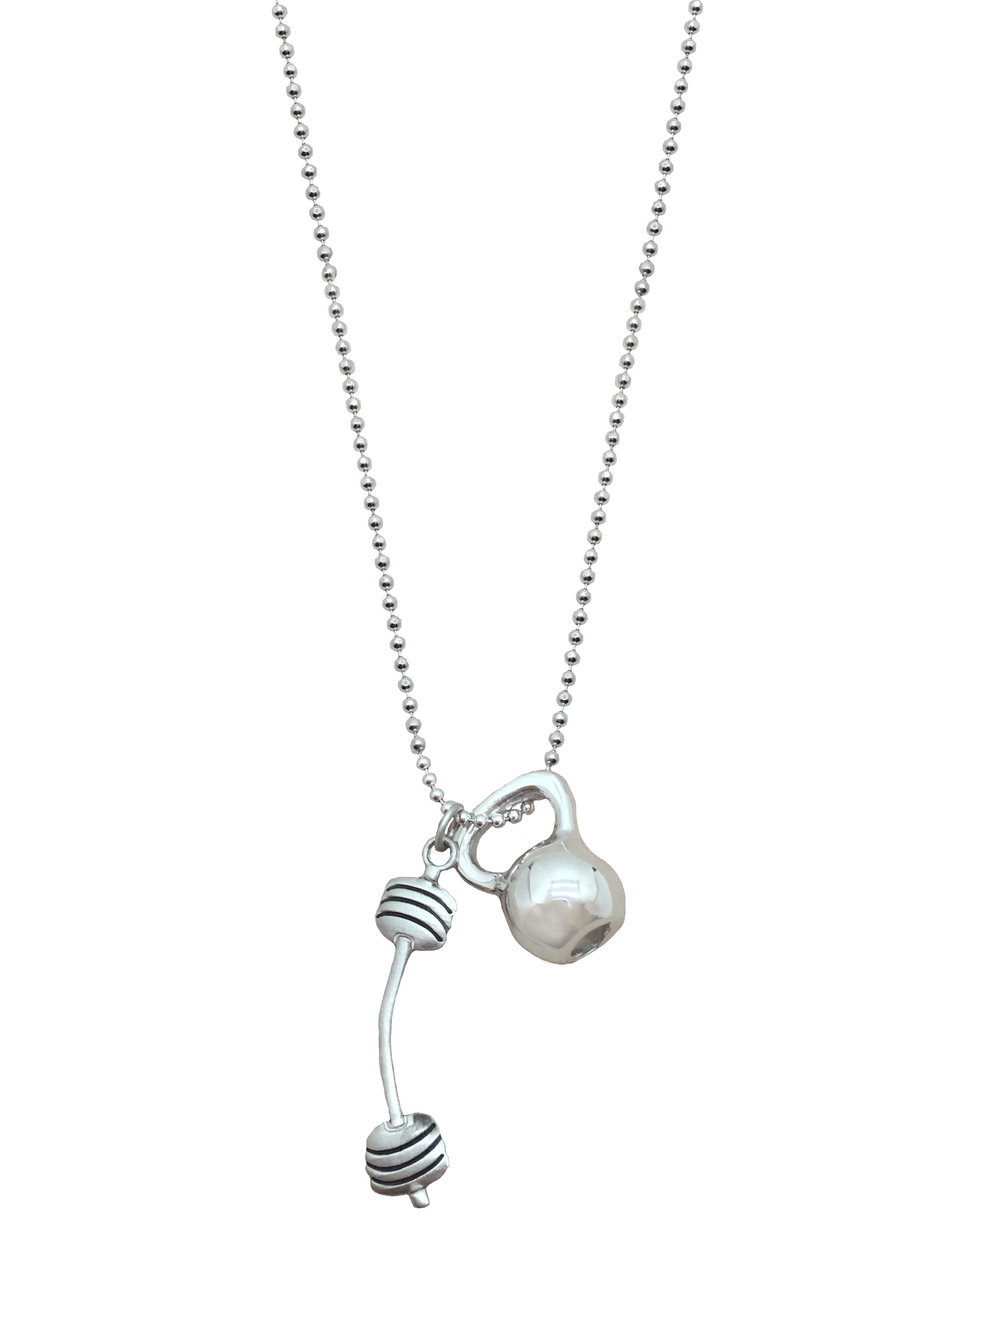 Kettlebell Barbell Necklace-hr.jpg